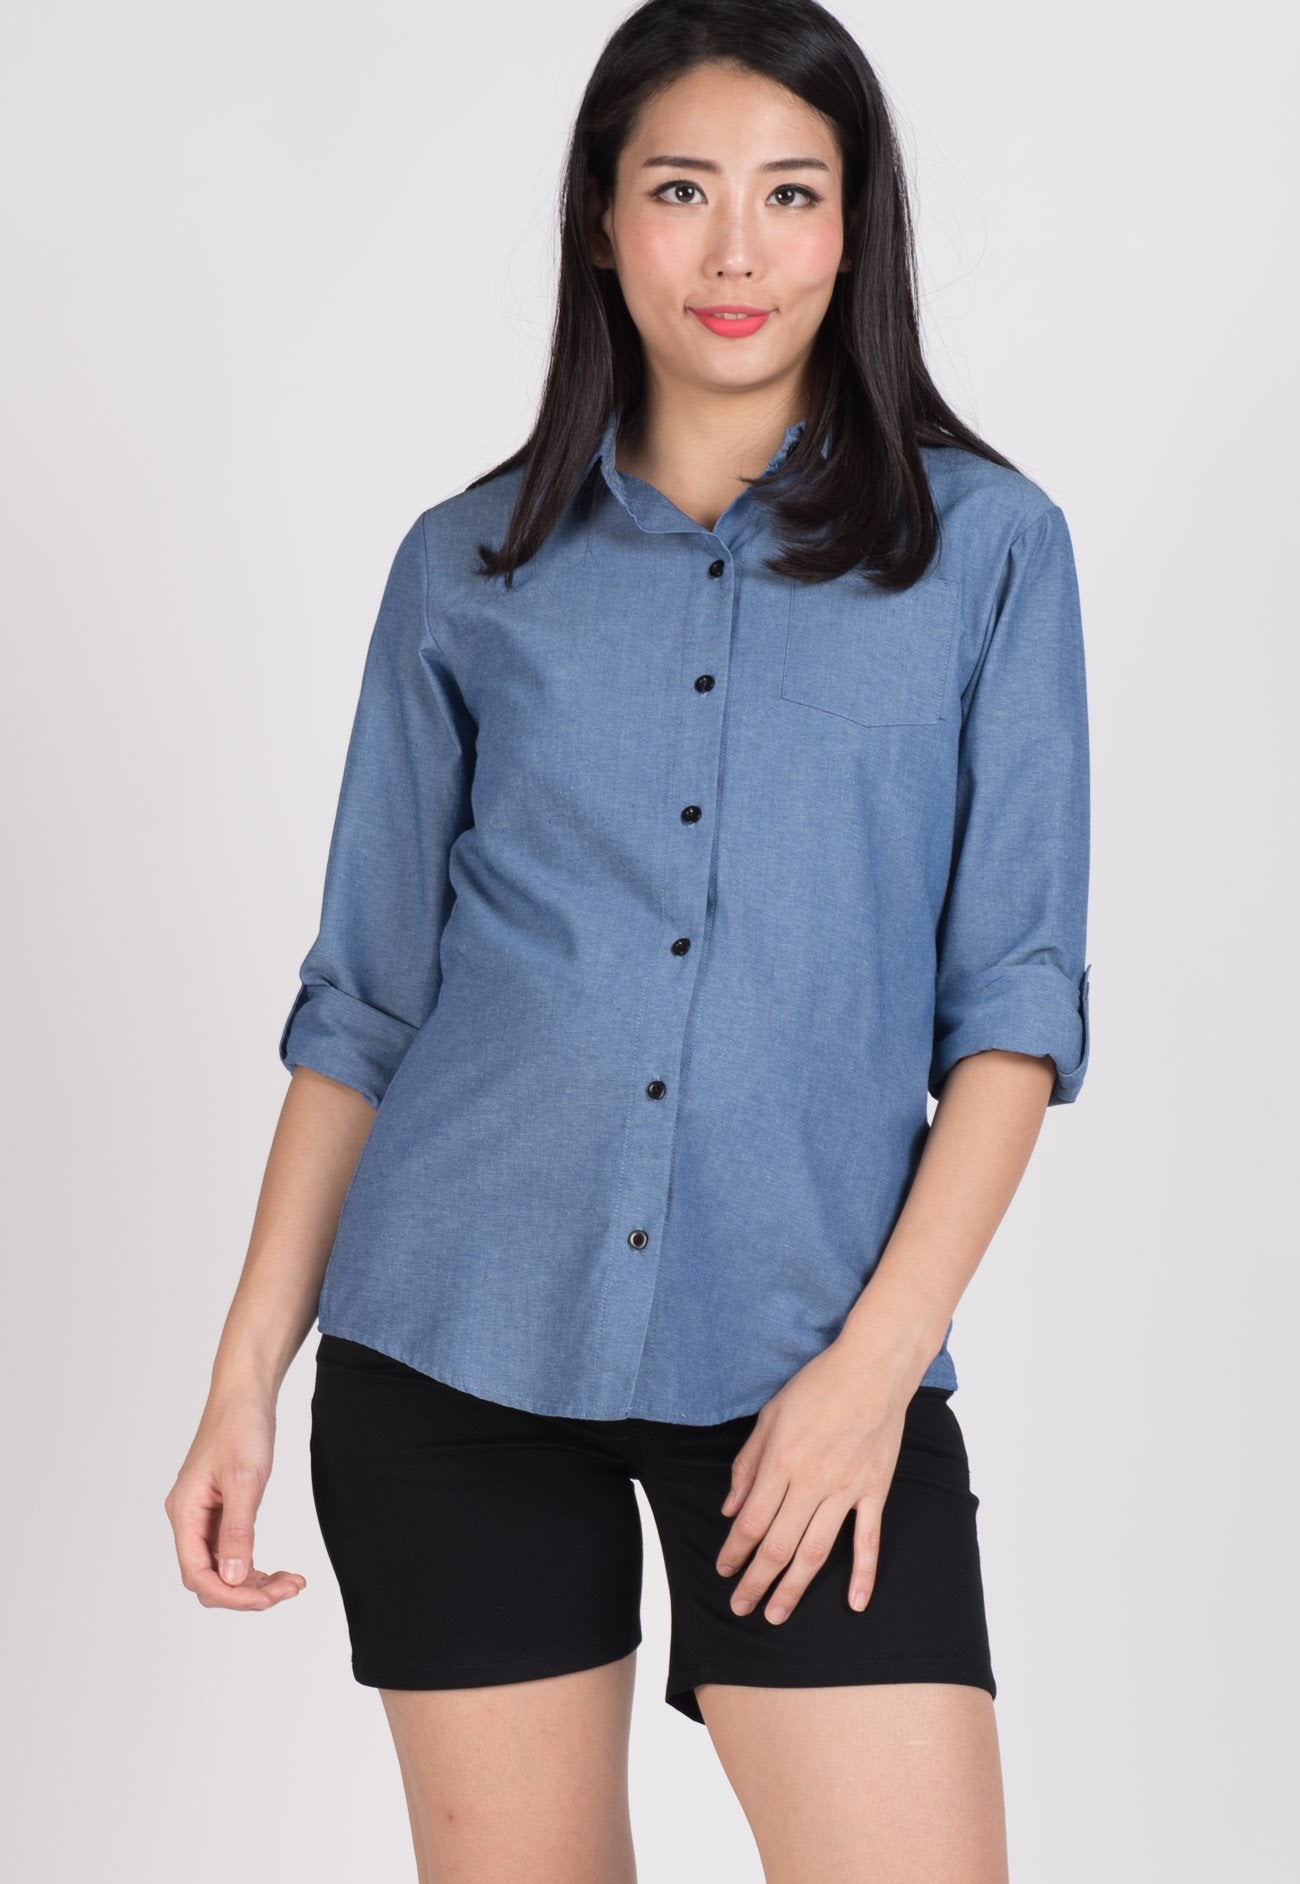 SALE Jeans Nursing Top Nursing Wear Mothercot